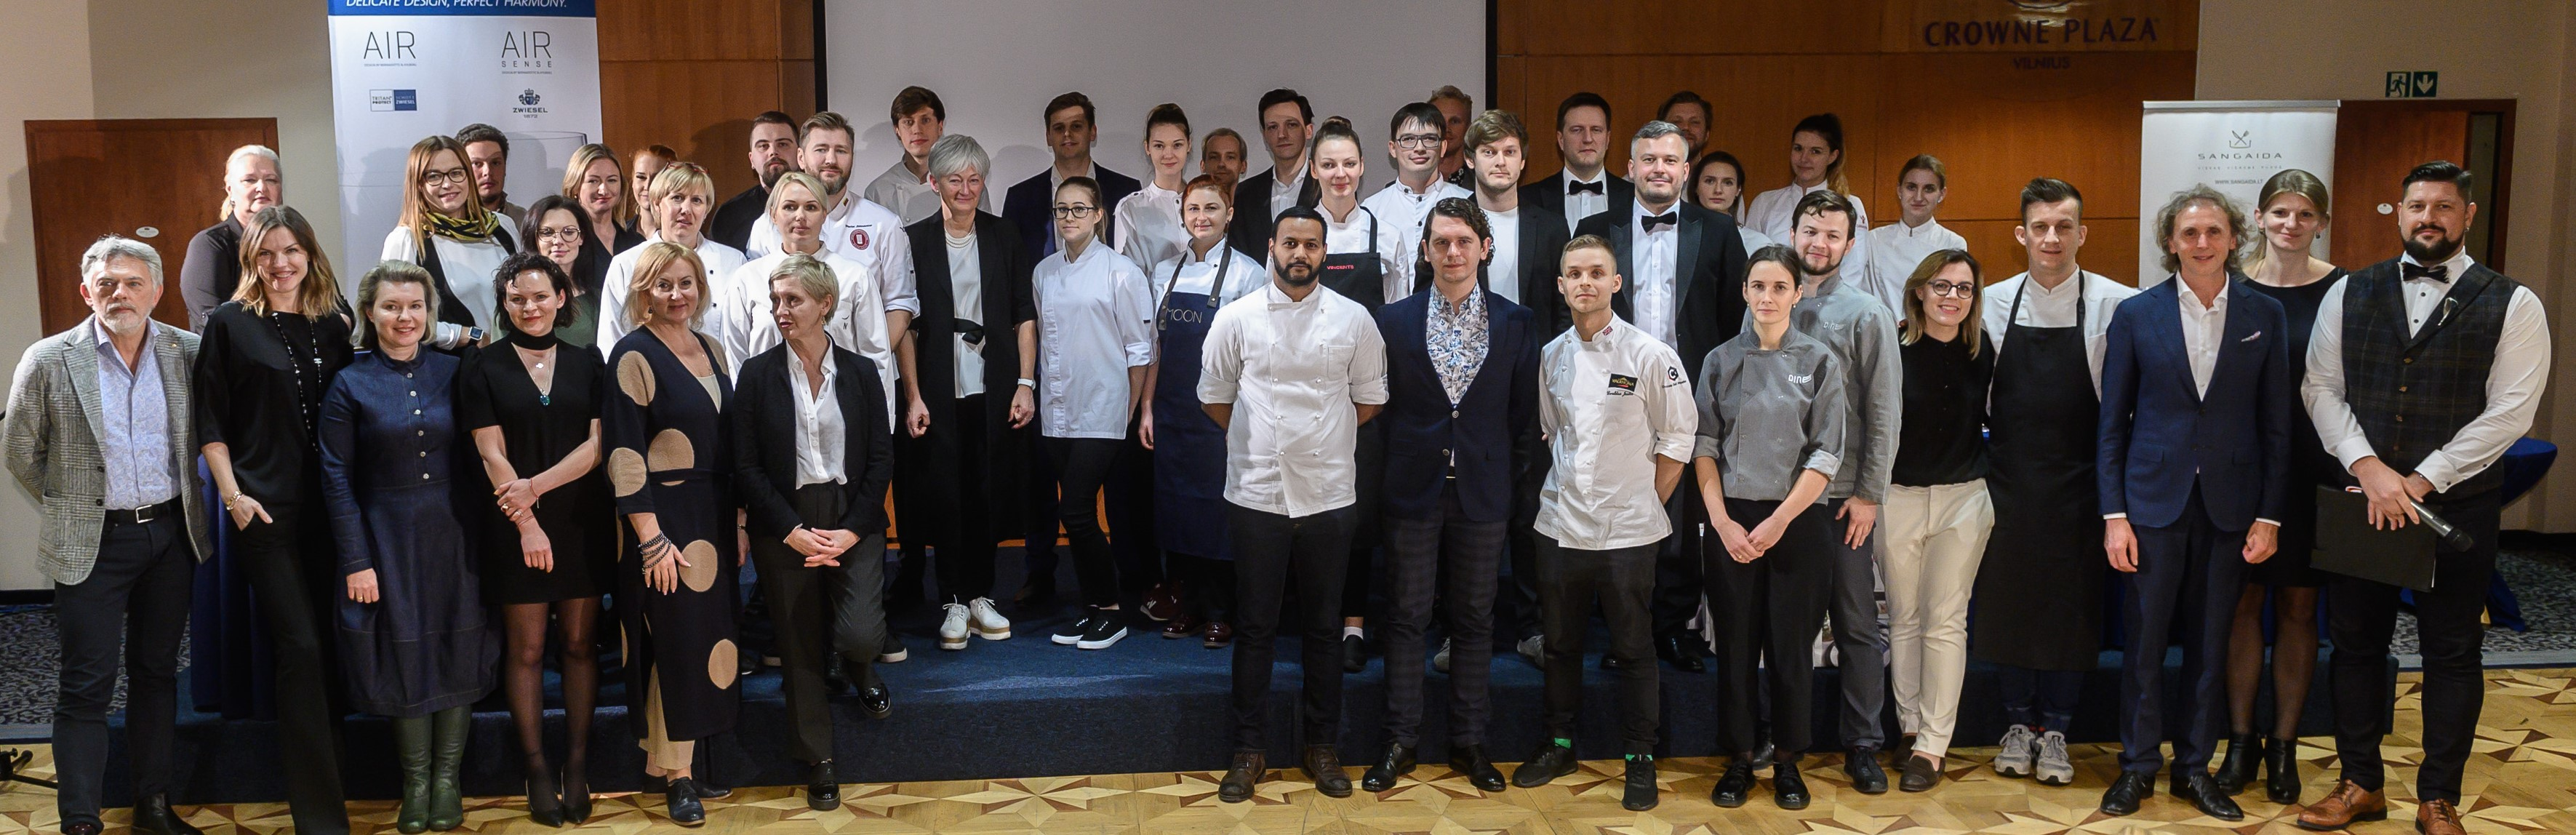 Wine and Dessert 2019 participants and jury members